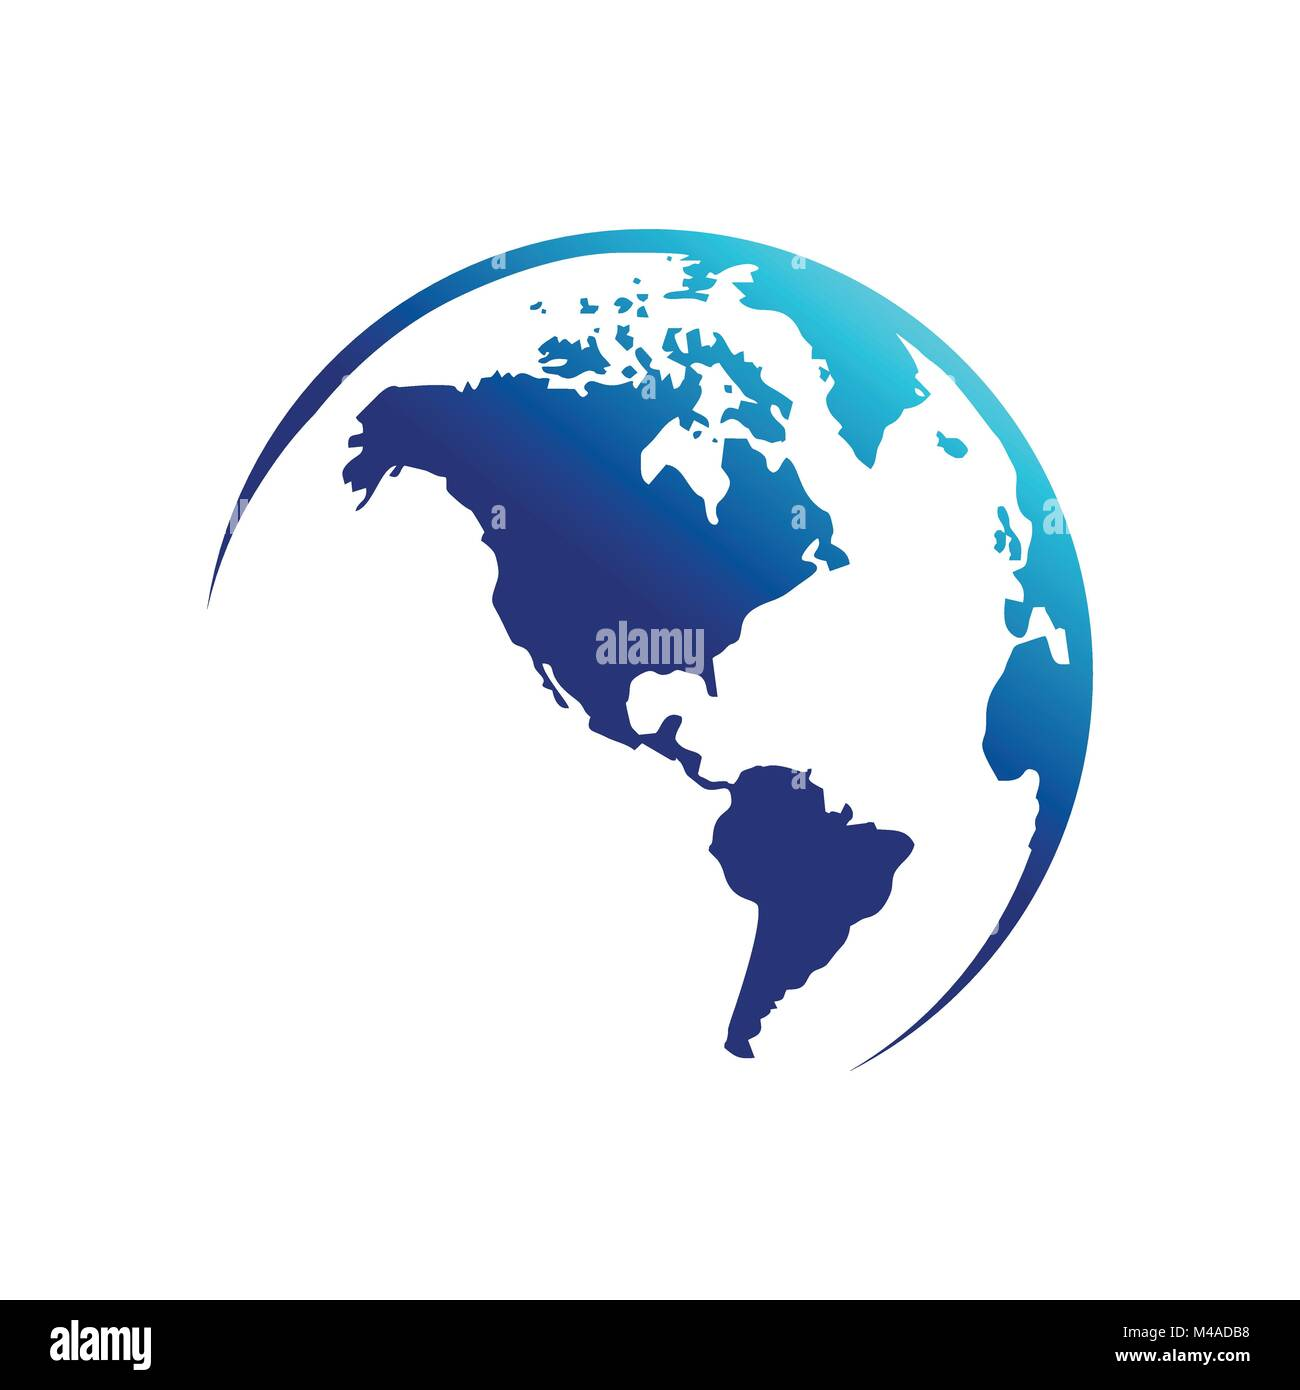 Globe logo blue world map stock vector images alamy america continent map globe vector symbol graphic logo design stock vector gumiabroncs Image collections